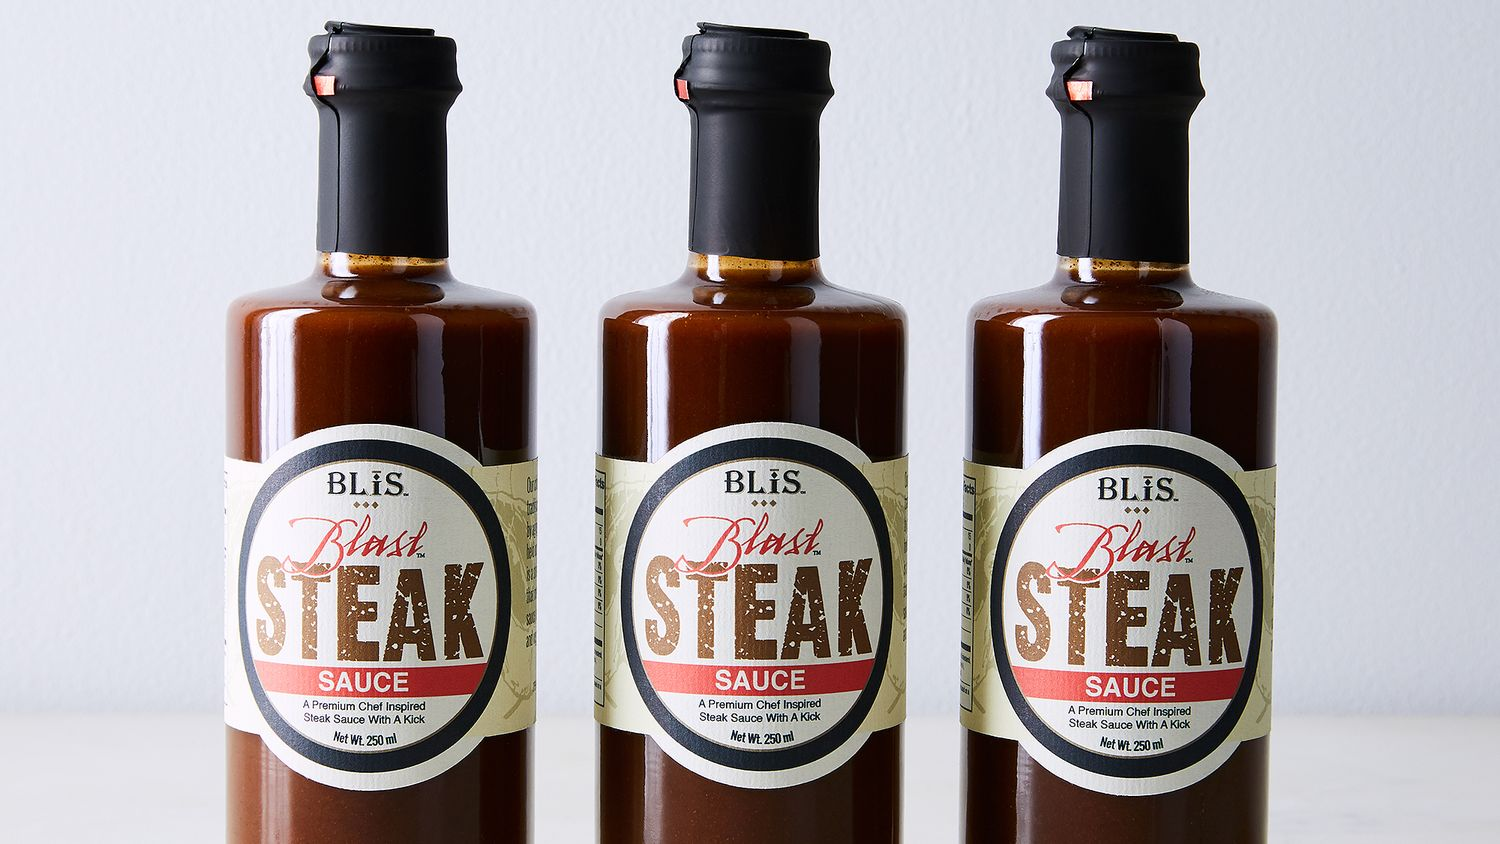 Blis Barrel Aged Steak Sauce 3 Pack On Food52